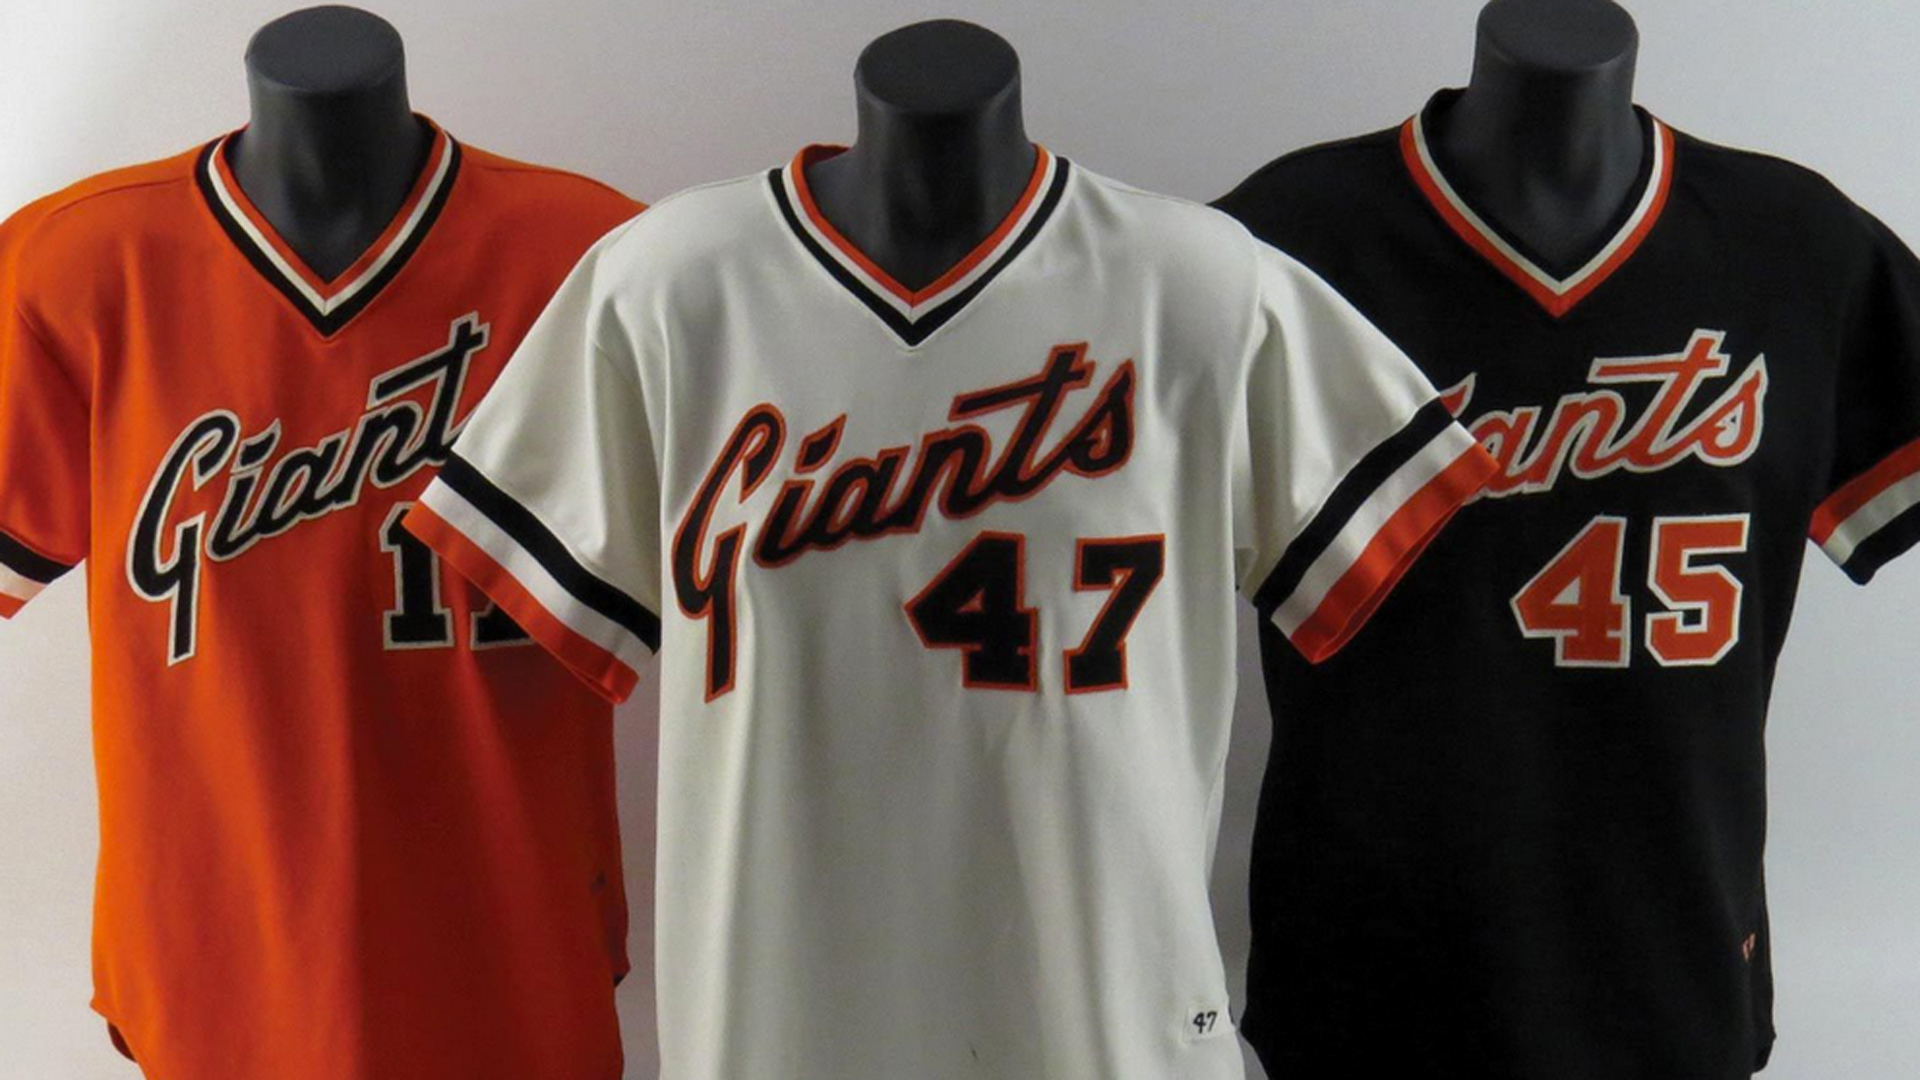 Major league baseball uniforms